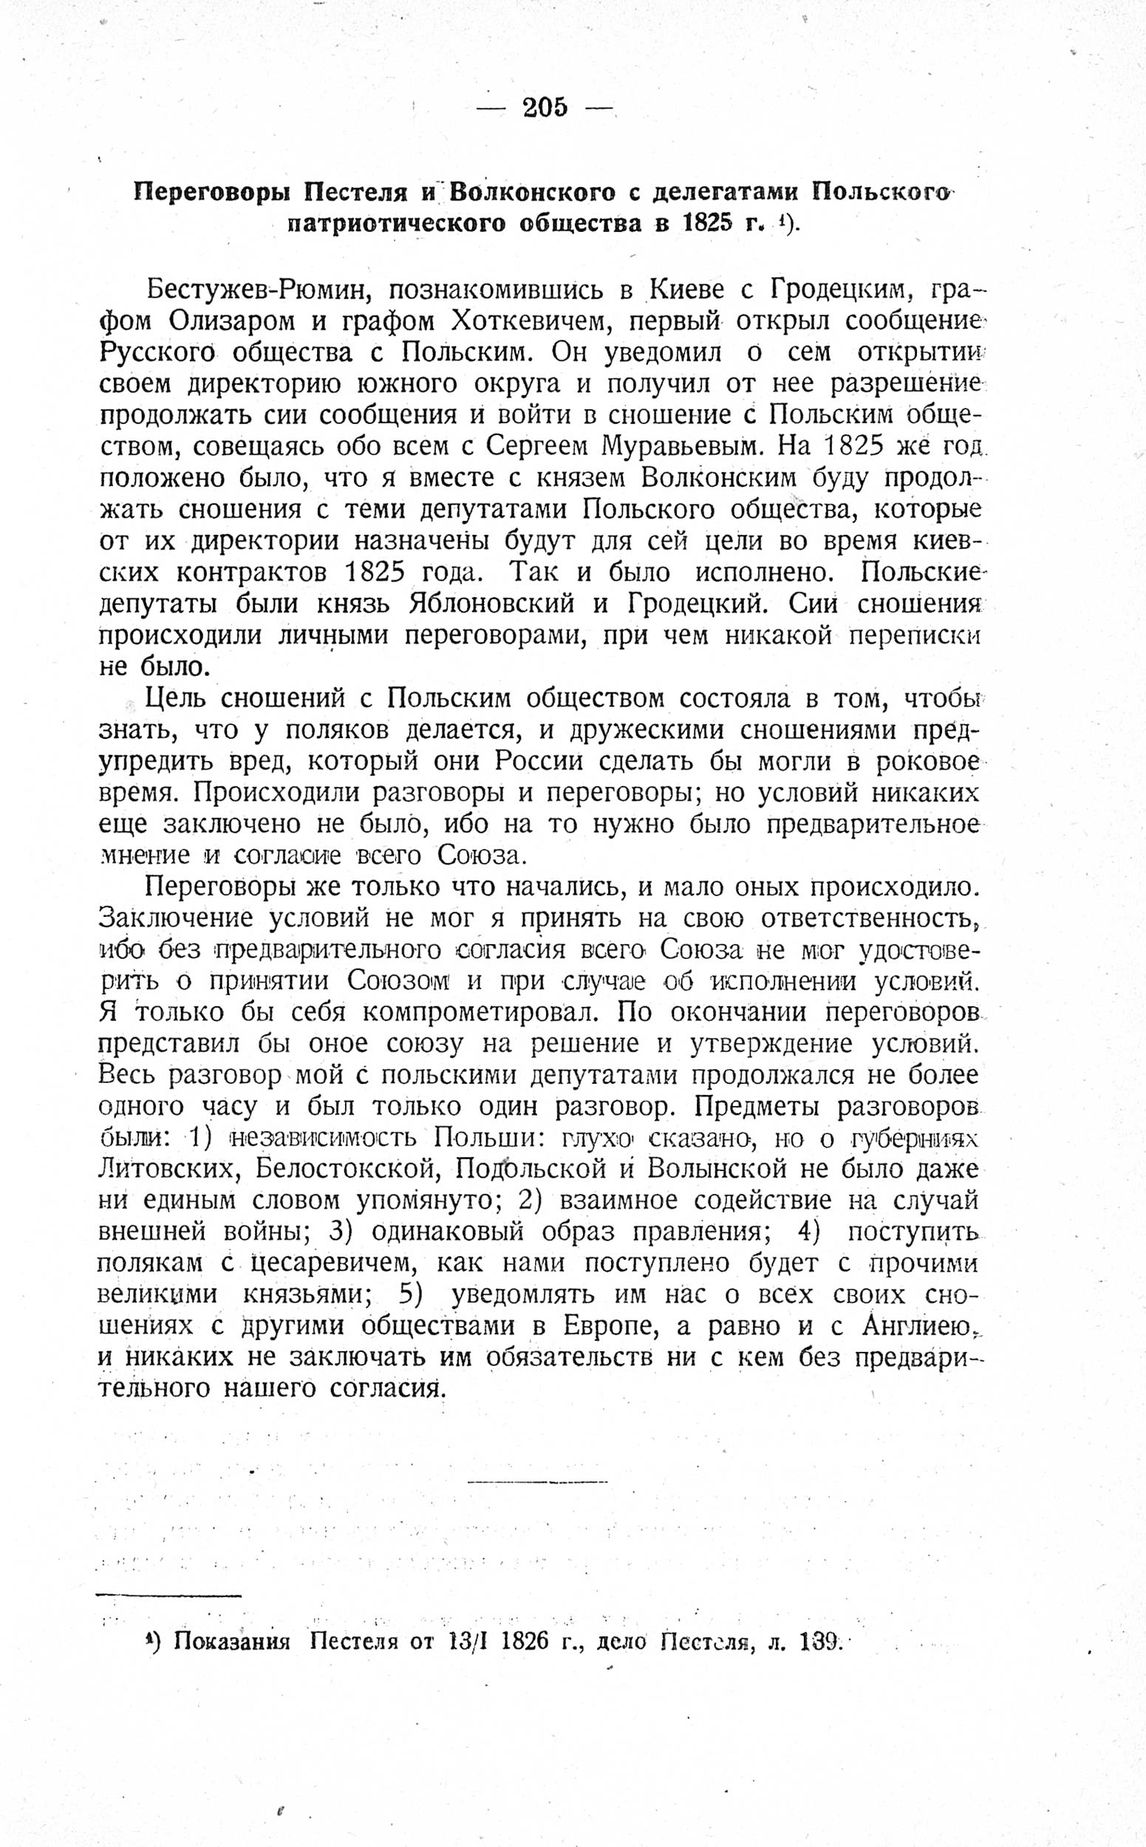 http://elib.shpl.ru/pages/625788/zooms/7